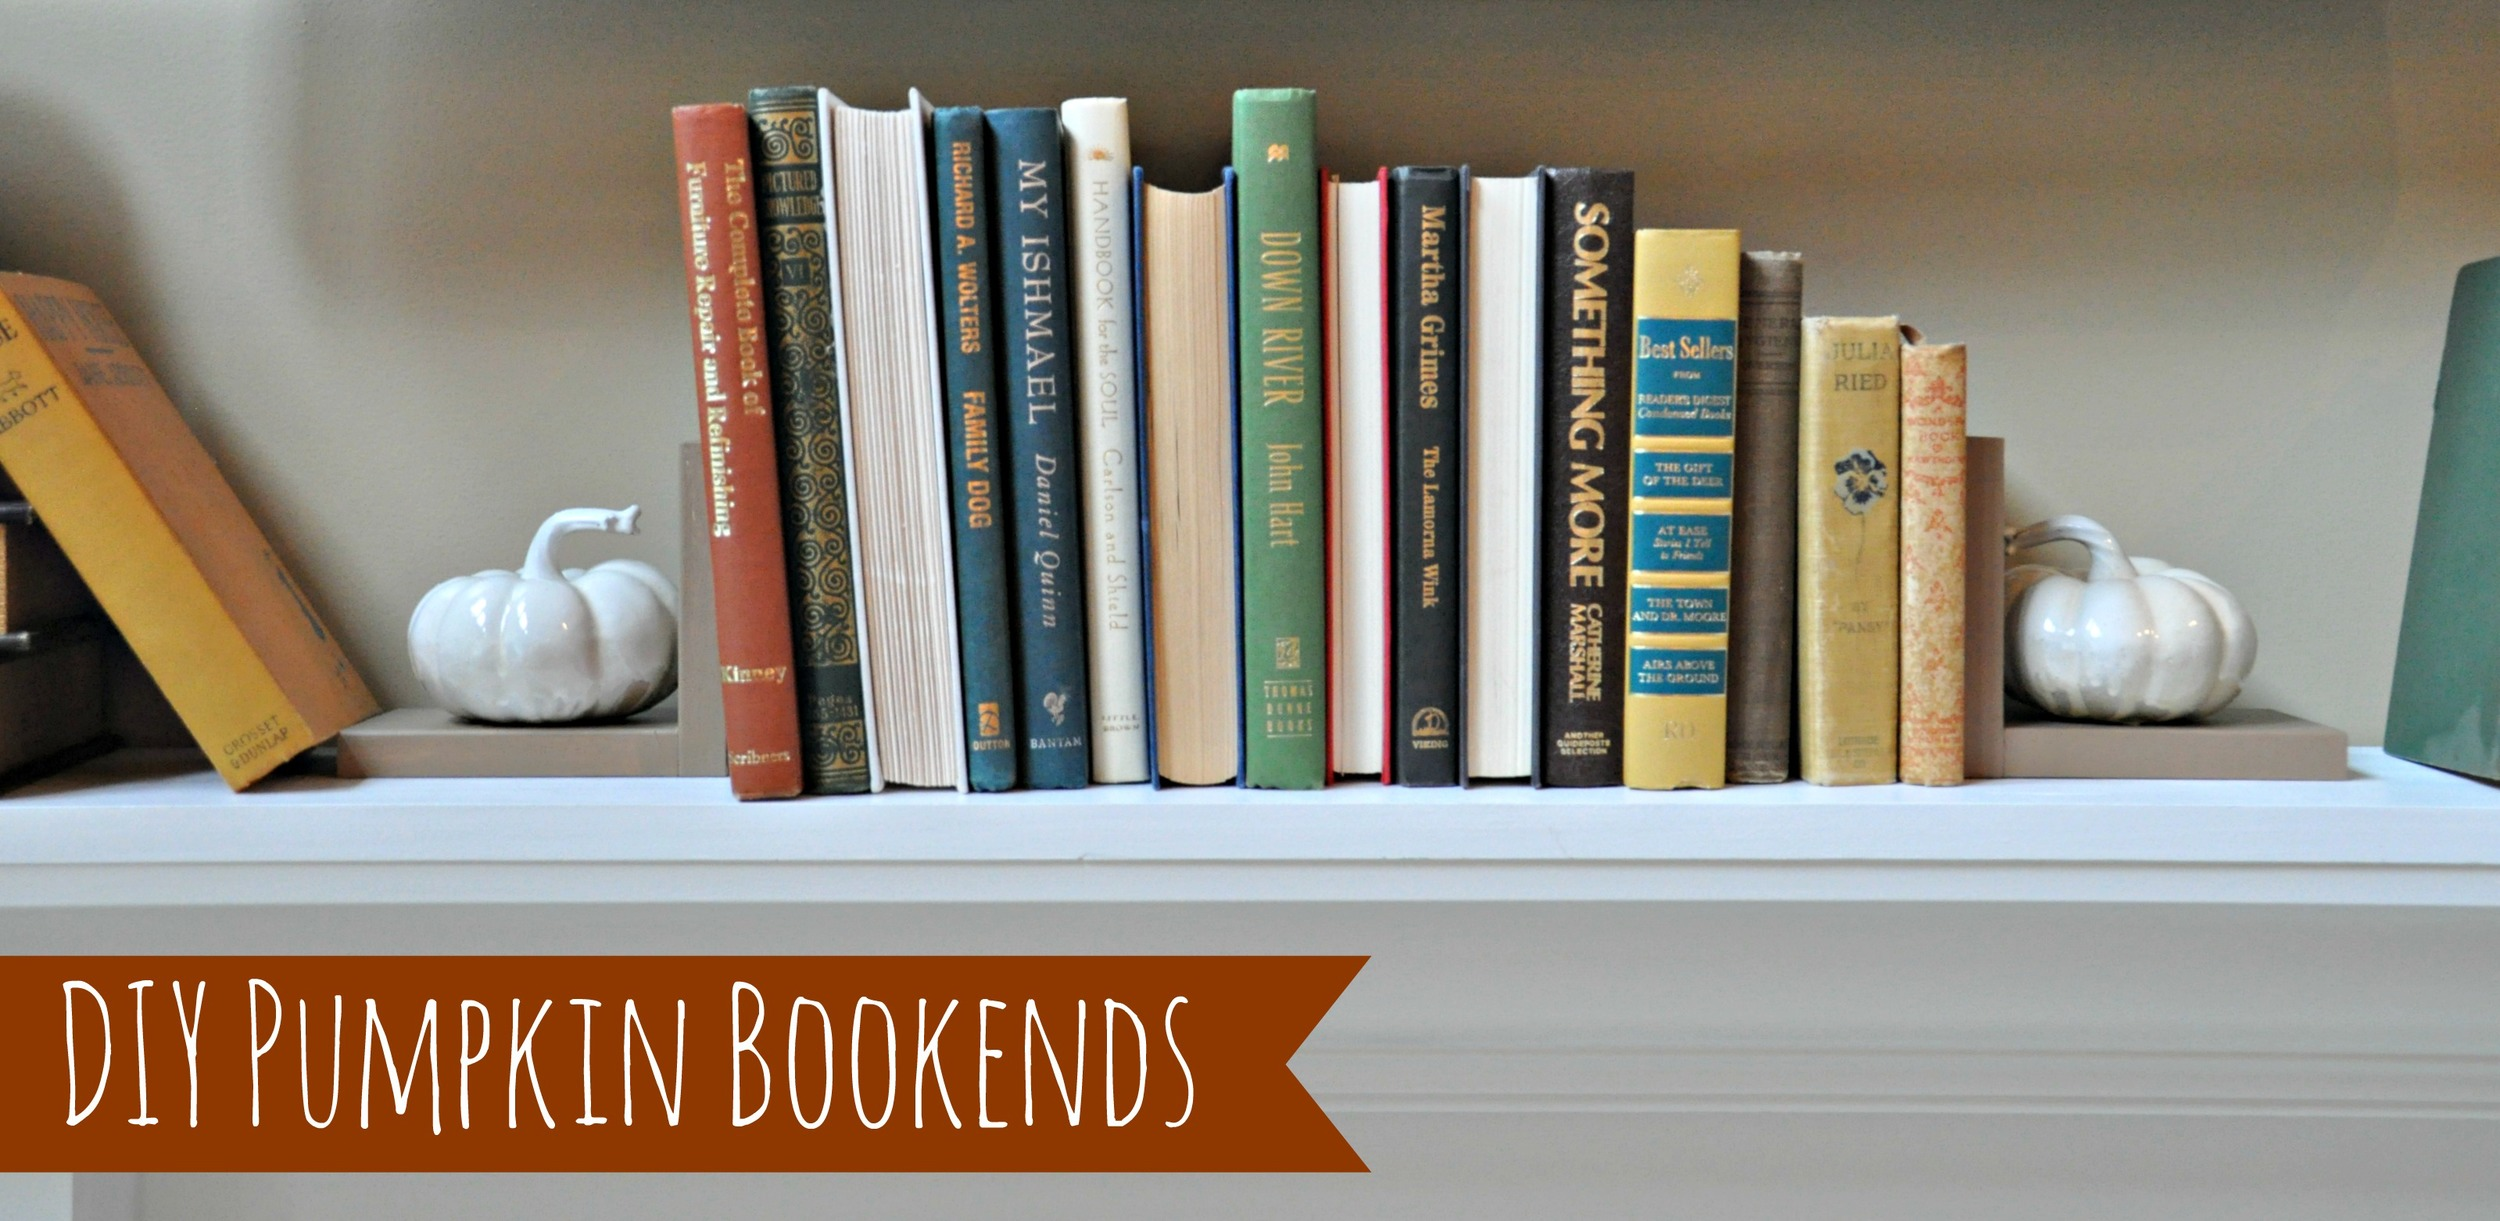 DIY Pumpkin Bookends.jpg